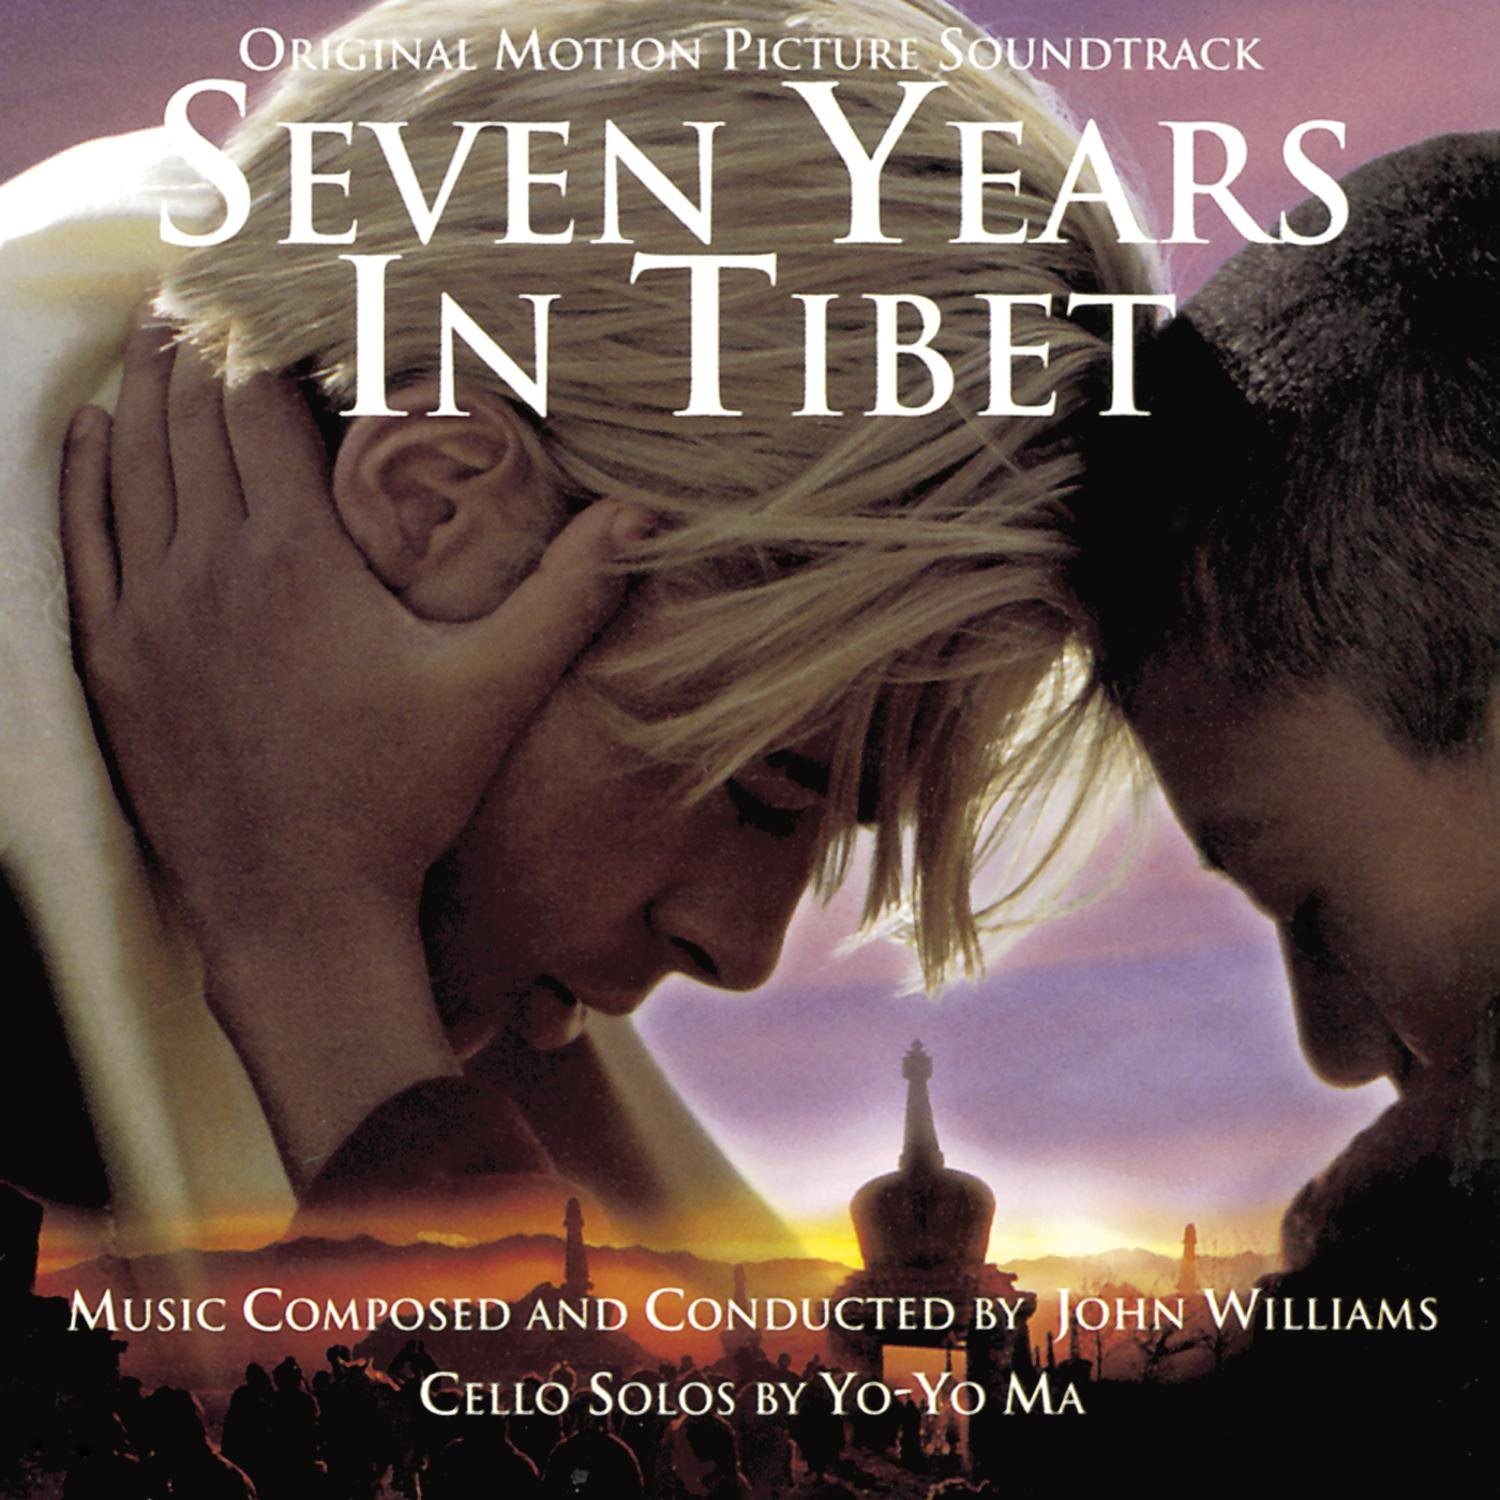 Image result for seven years in tibet soundtrack amazon